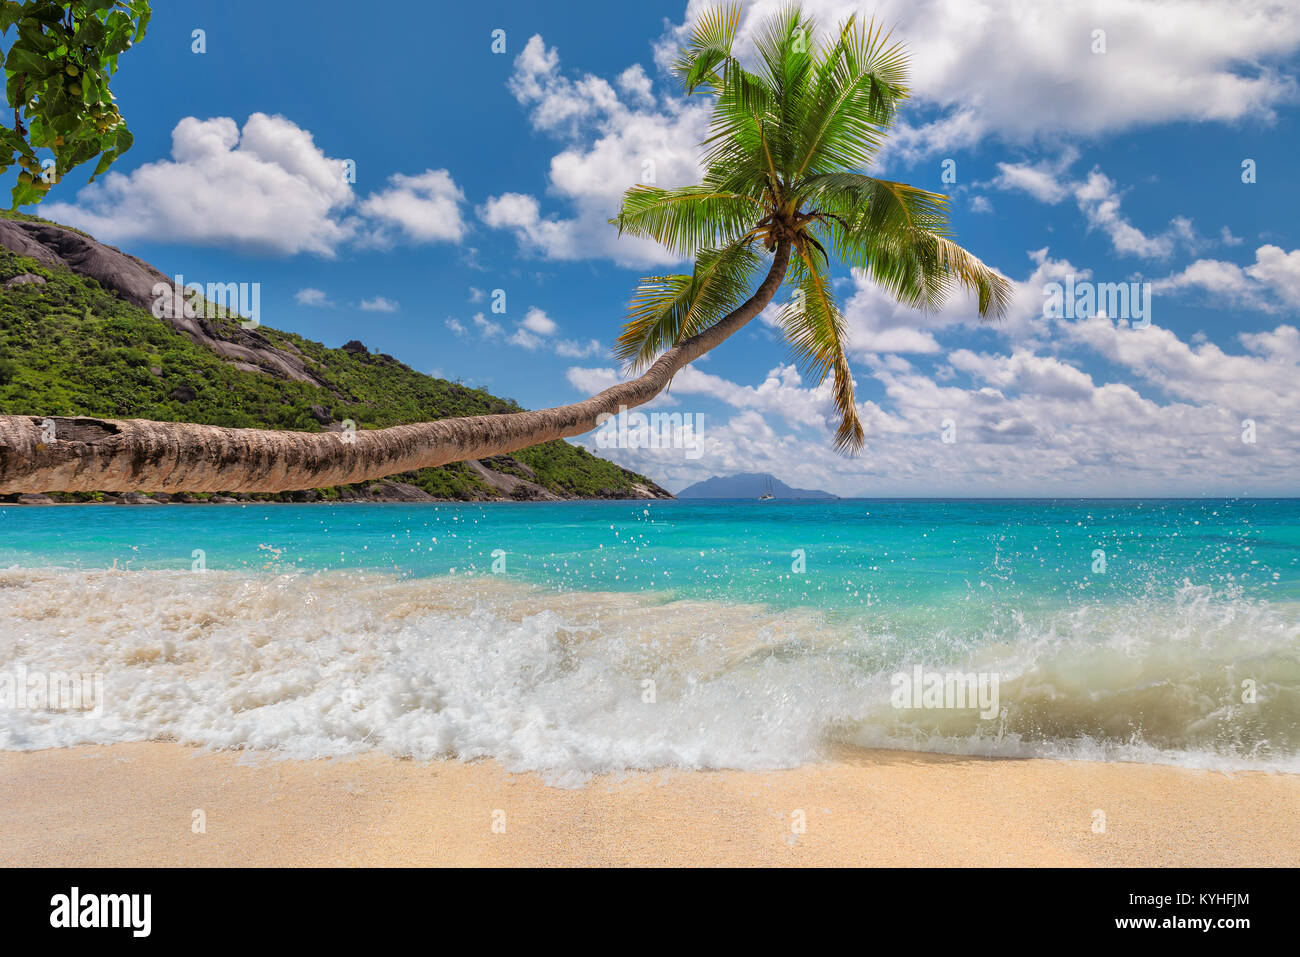 Tropical sandy beach with palm tree. - Stock Image